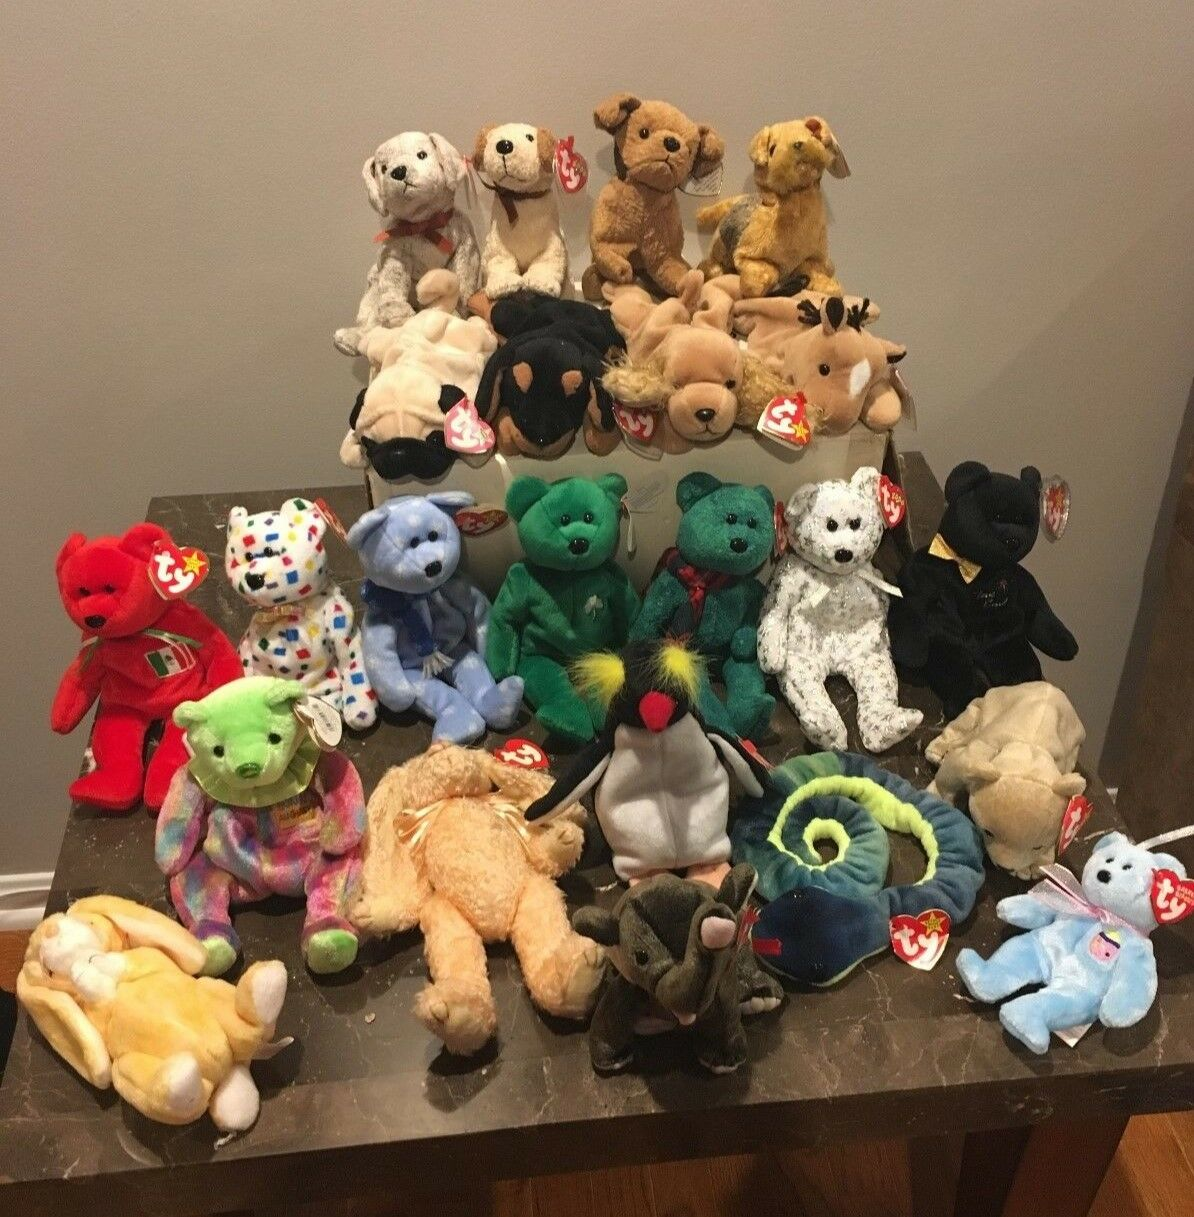 RARE RETIRED TY Beanie Baby Collection 1995-2000 (23 items) Great Great Great condition    3ff9ef